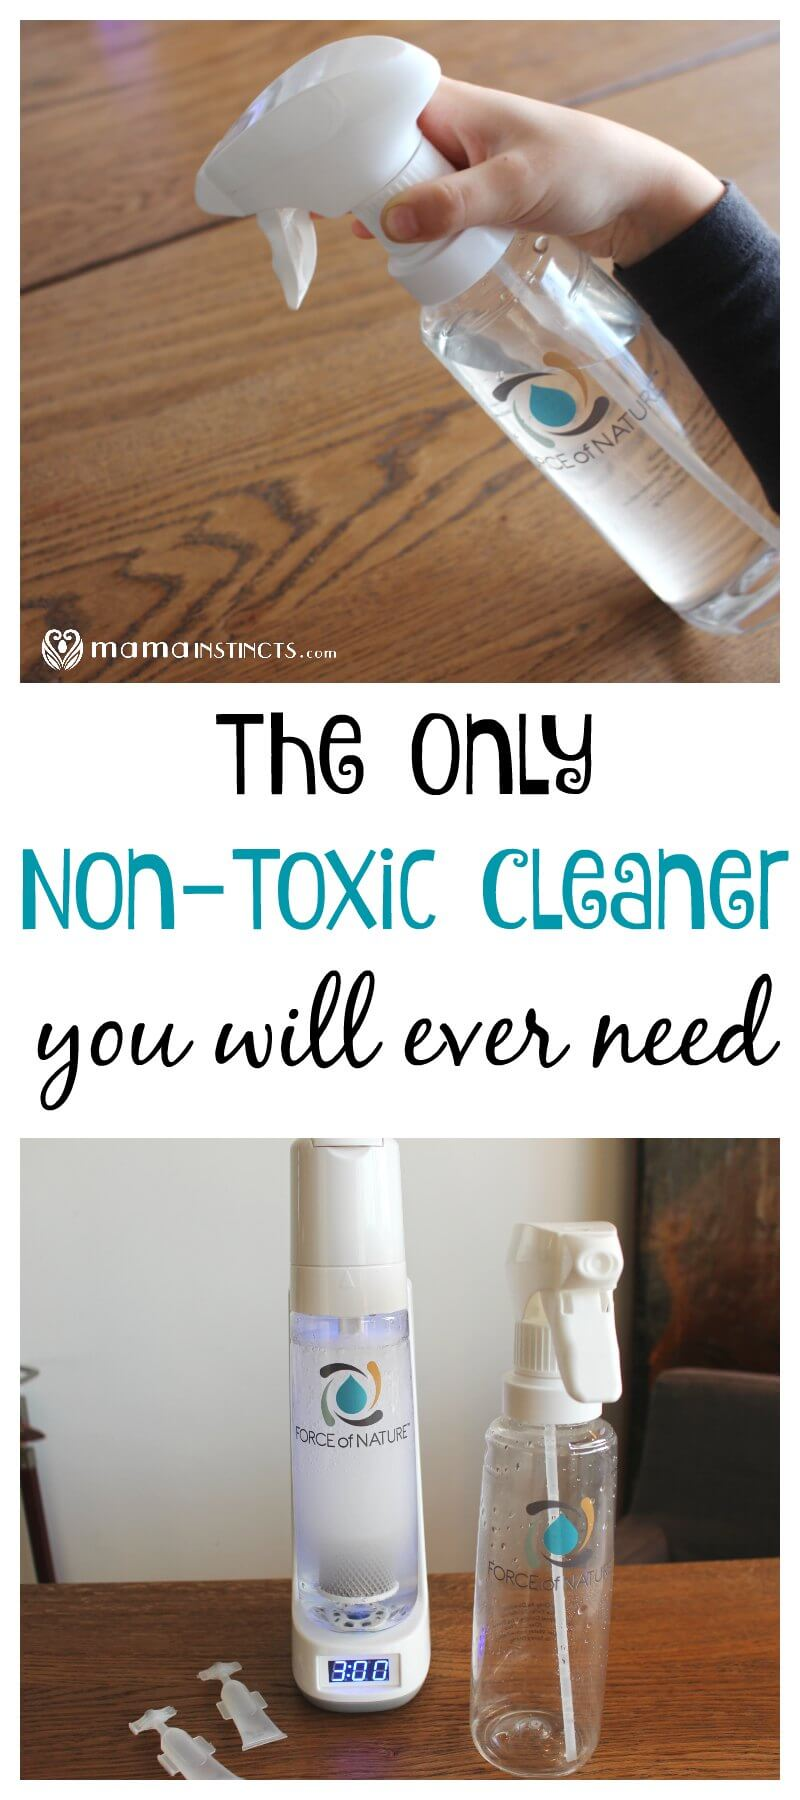 Non-toxic cleaners that actually work seem like a rare unicorn, that is, until Force of Nature came along. Check out this amazing technology that turns water, salt and vinegar into a non-toxic cleaner that will replace all your cleaners and is safe for kids. #nontoxic #greenliving